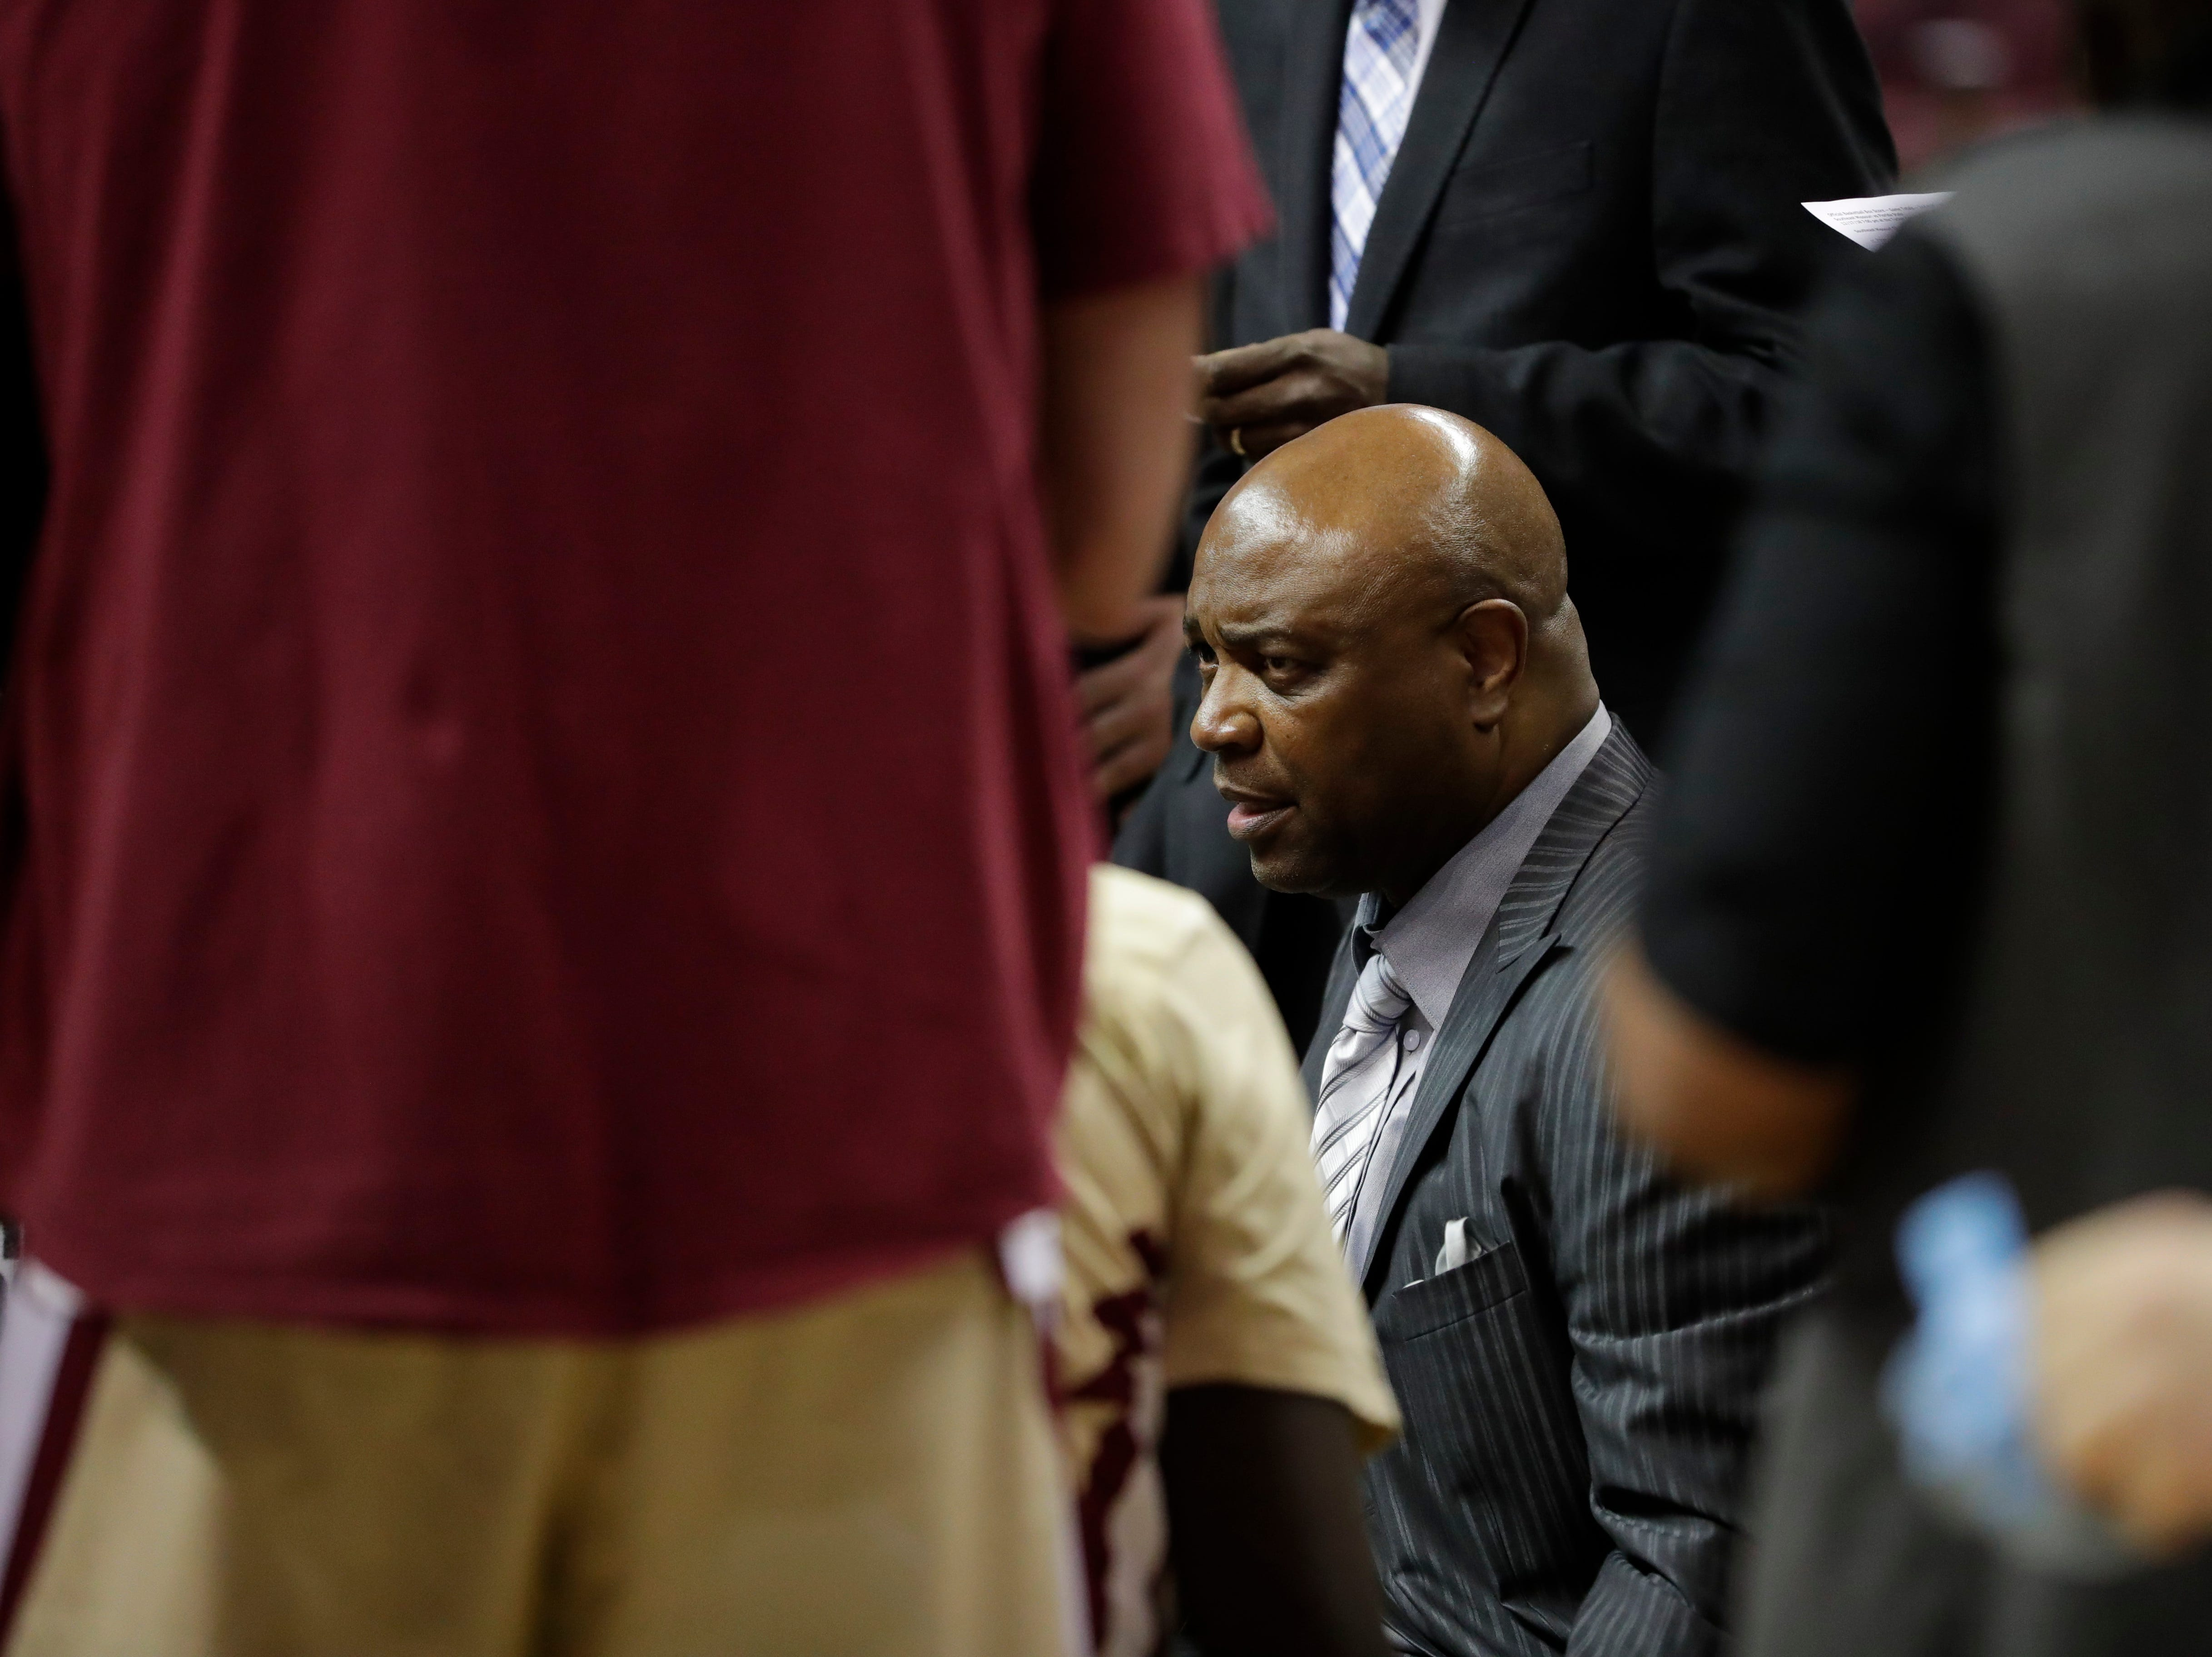 Florida State Seminoles head coach Leonard Hamilton talks with his team during a timeout during a game between Florida State University and Southeast Missouri State University at the Donald L. Tucker Civic Center Monday, Dec. 17, 2018.